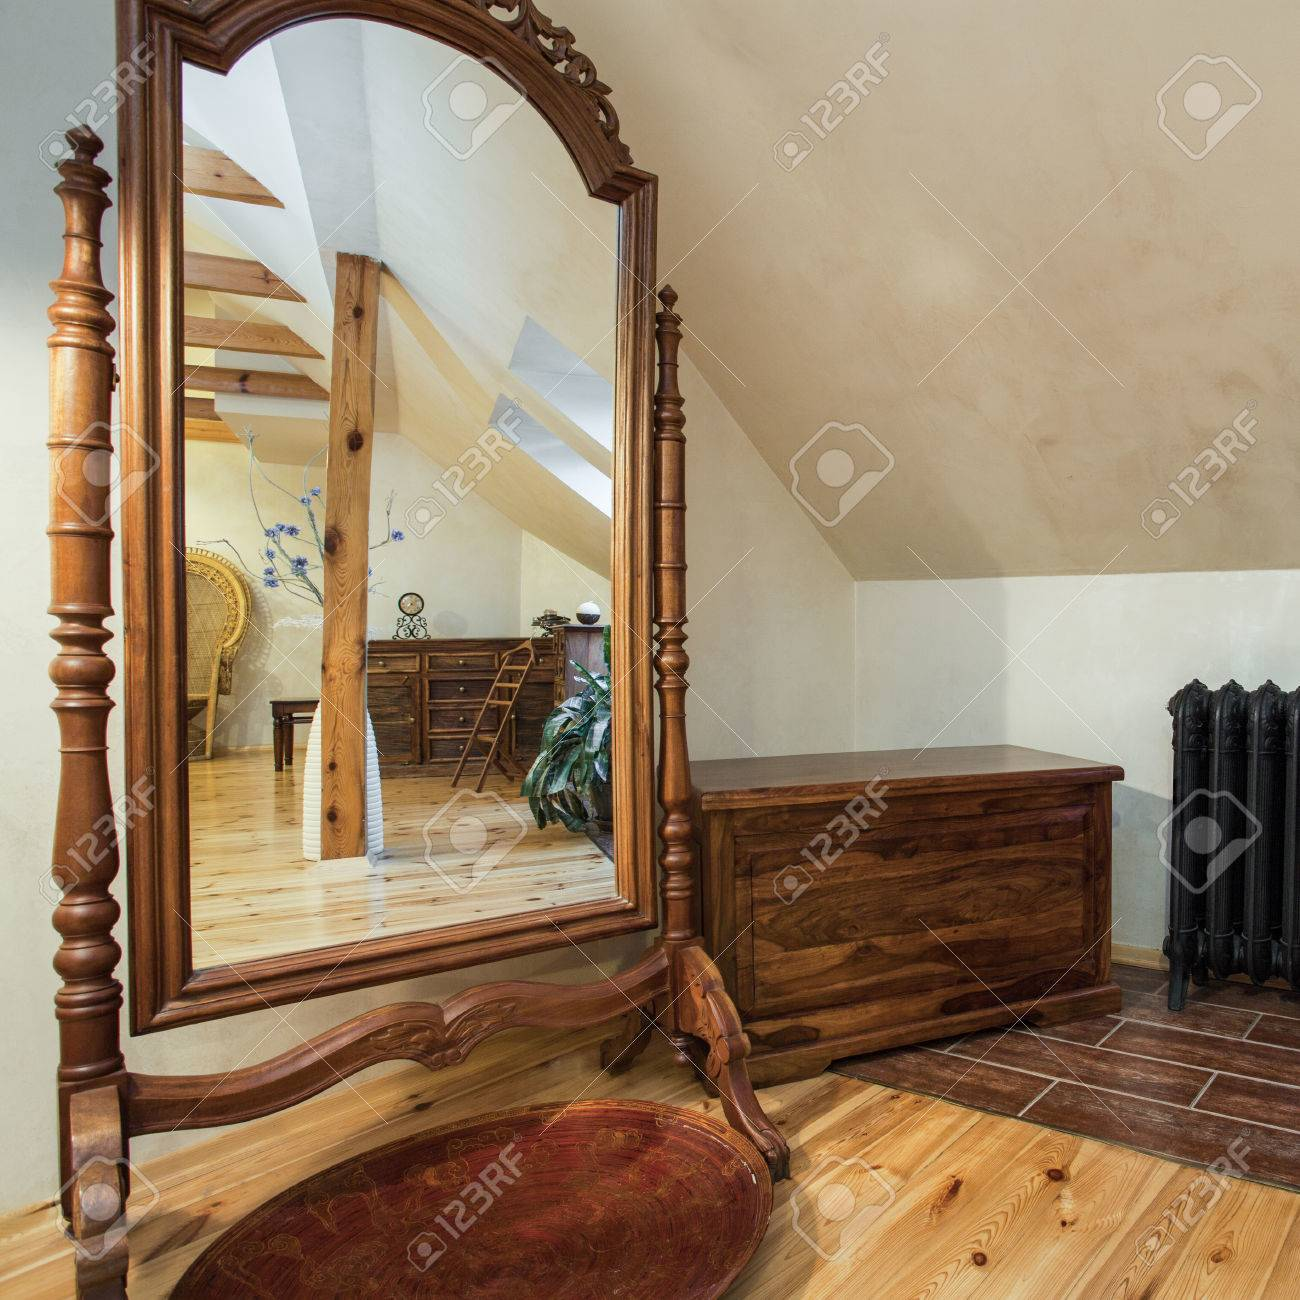 Huge Mirror Cloudy Home Old Fashioned Furniture A Huge Mirror